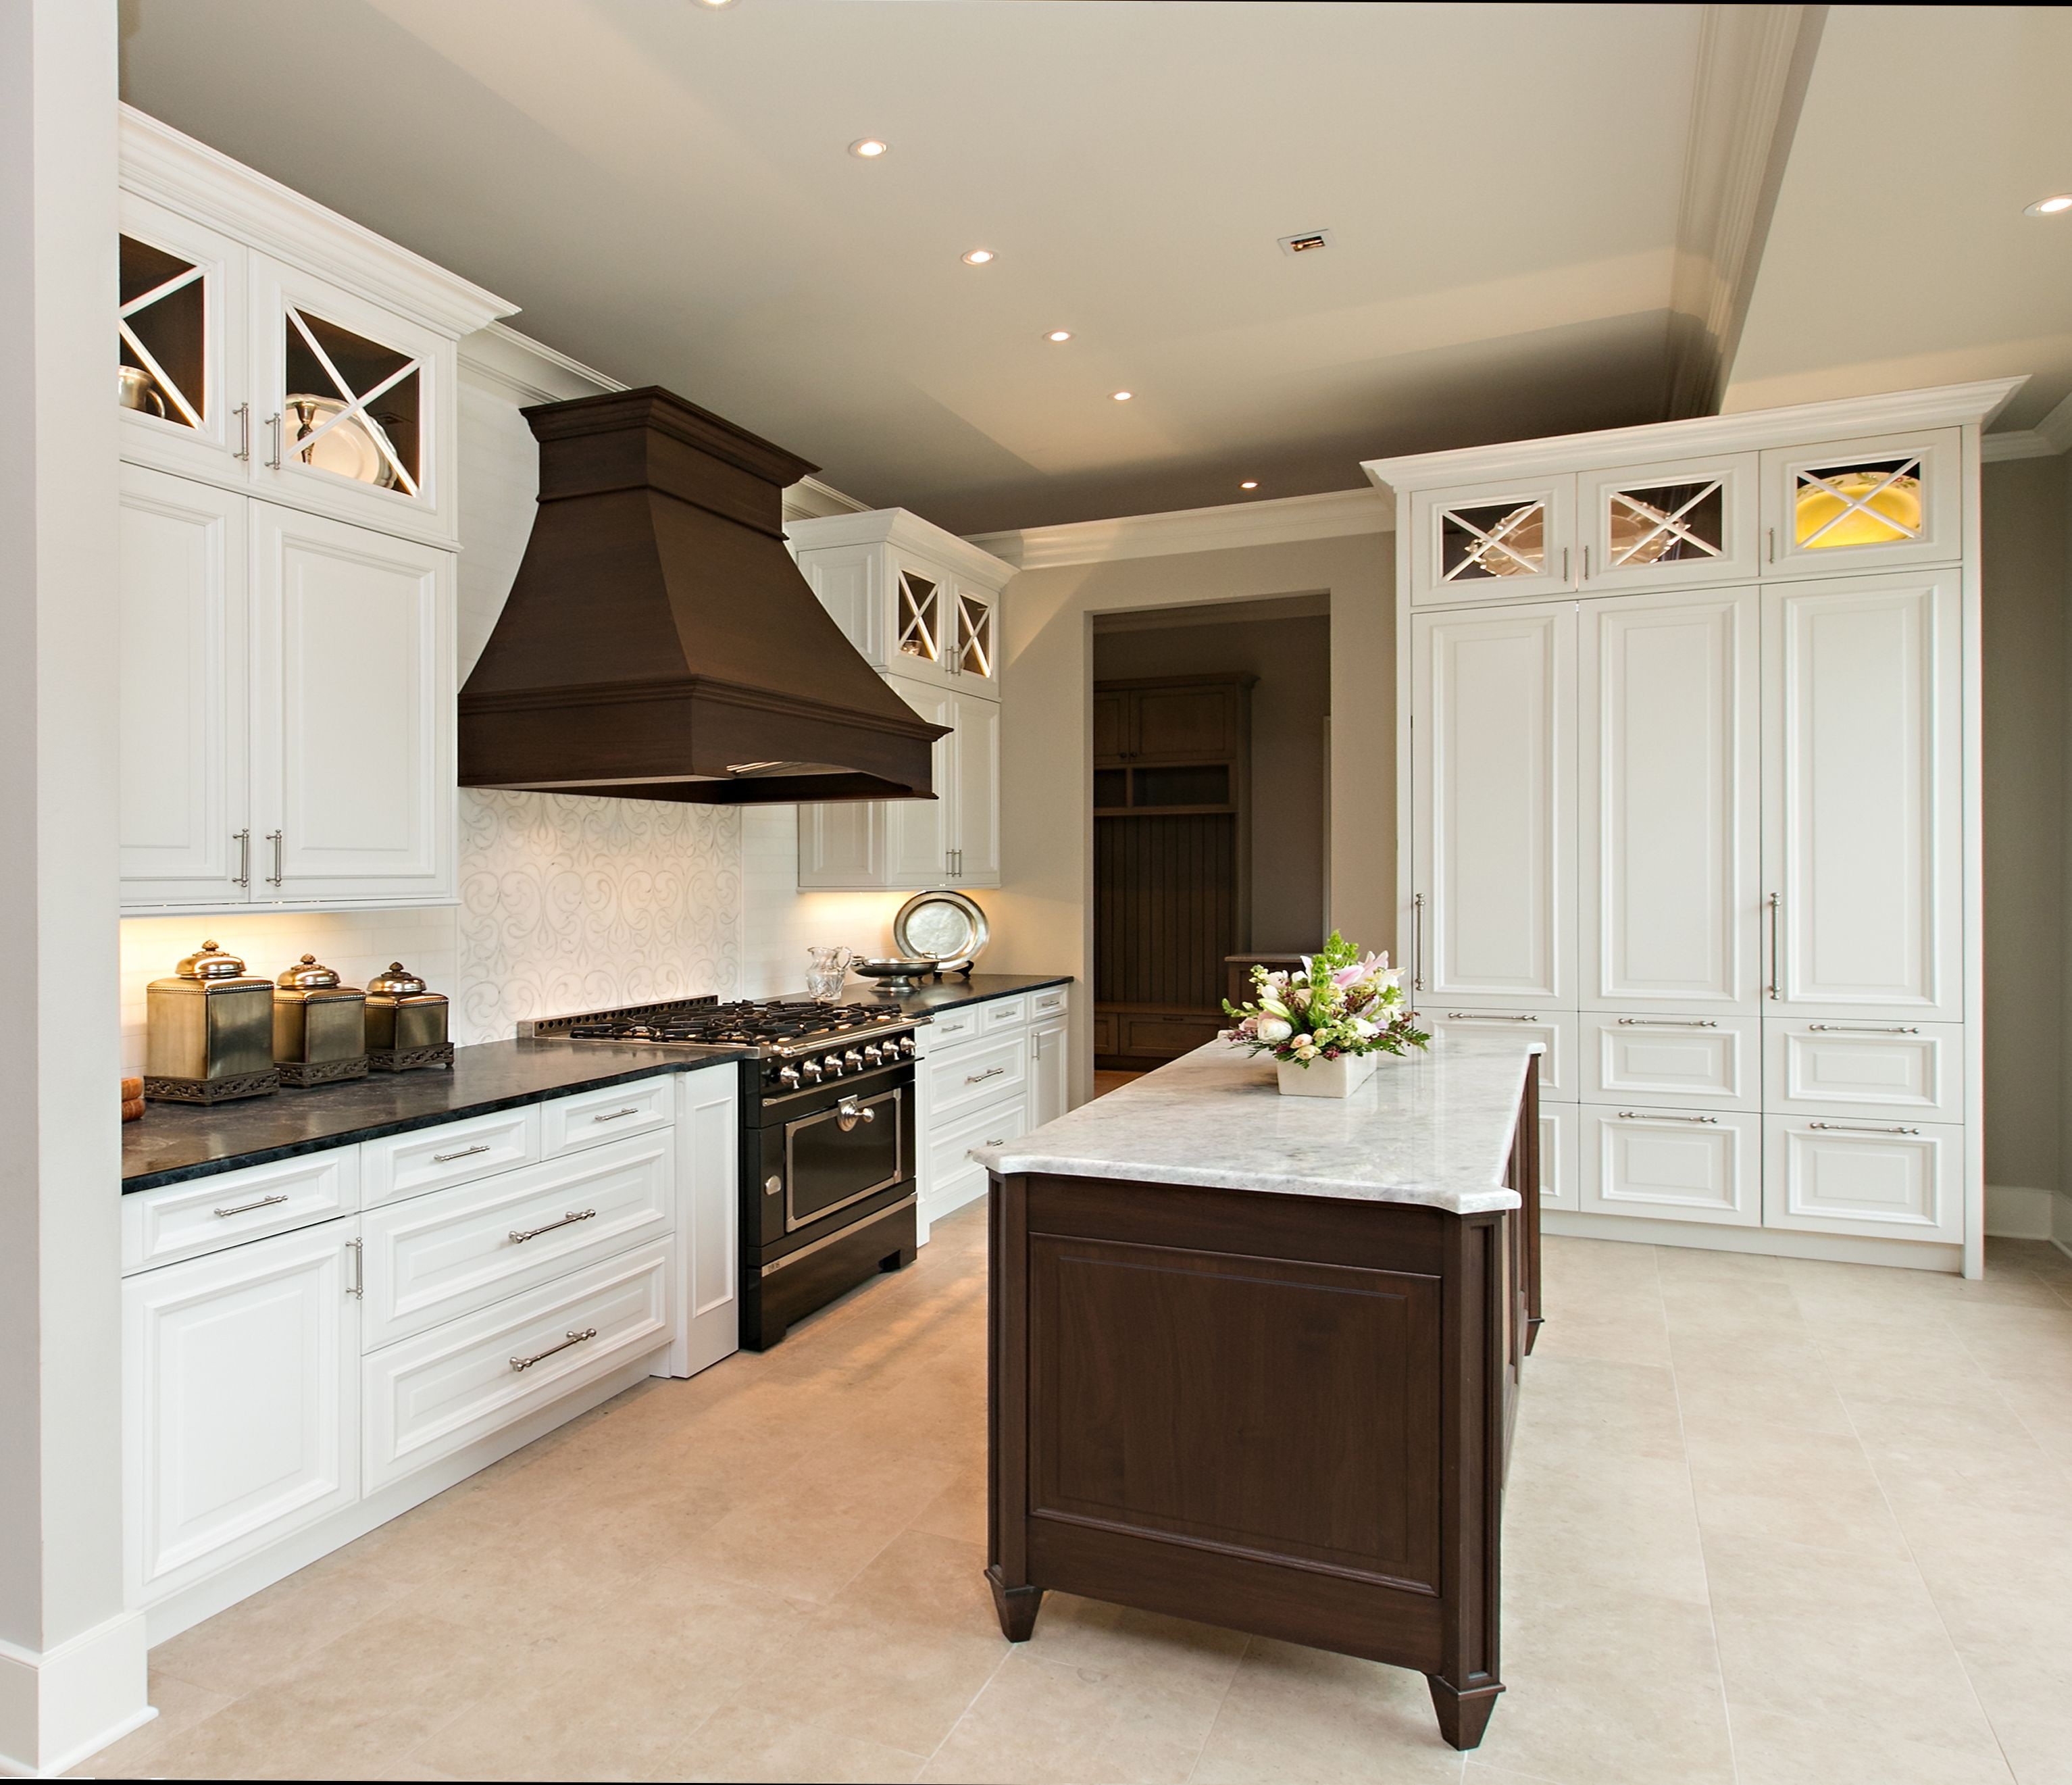 wood mode kitchens metal kitchen chairs display at the bath cottage featuring fine custom cabinetry artistic